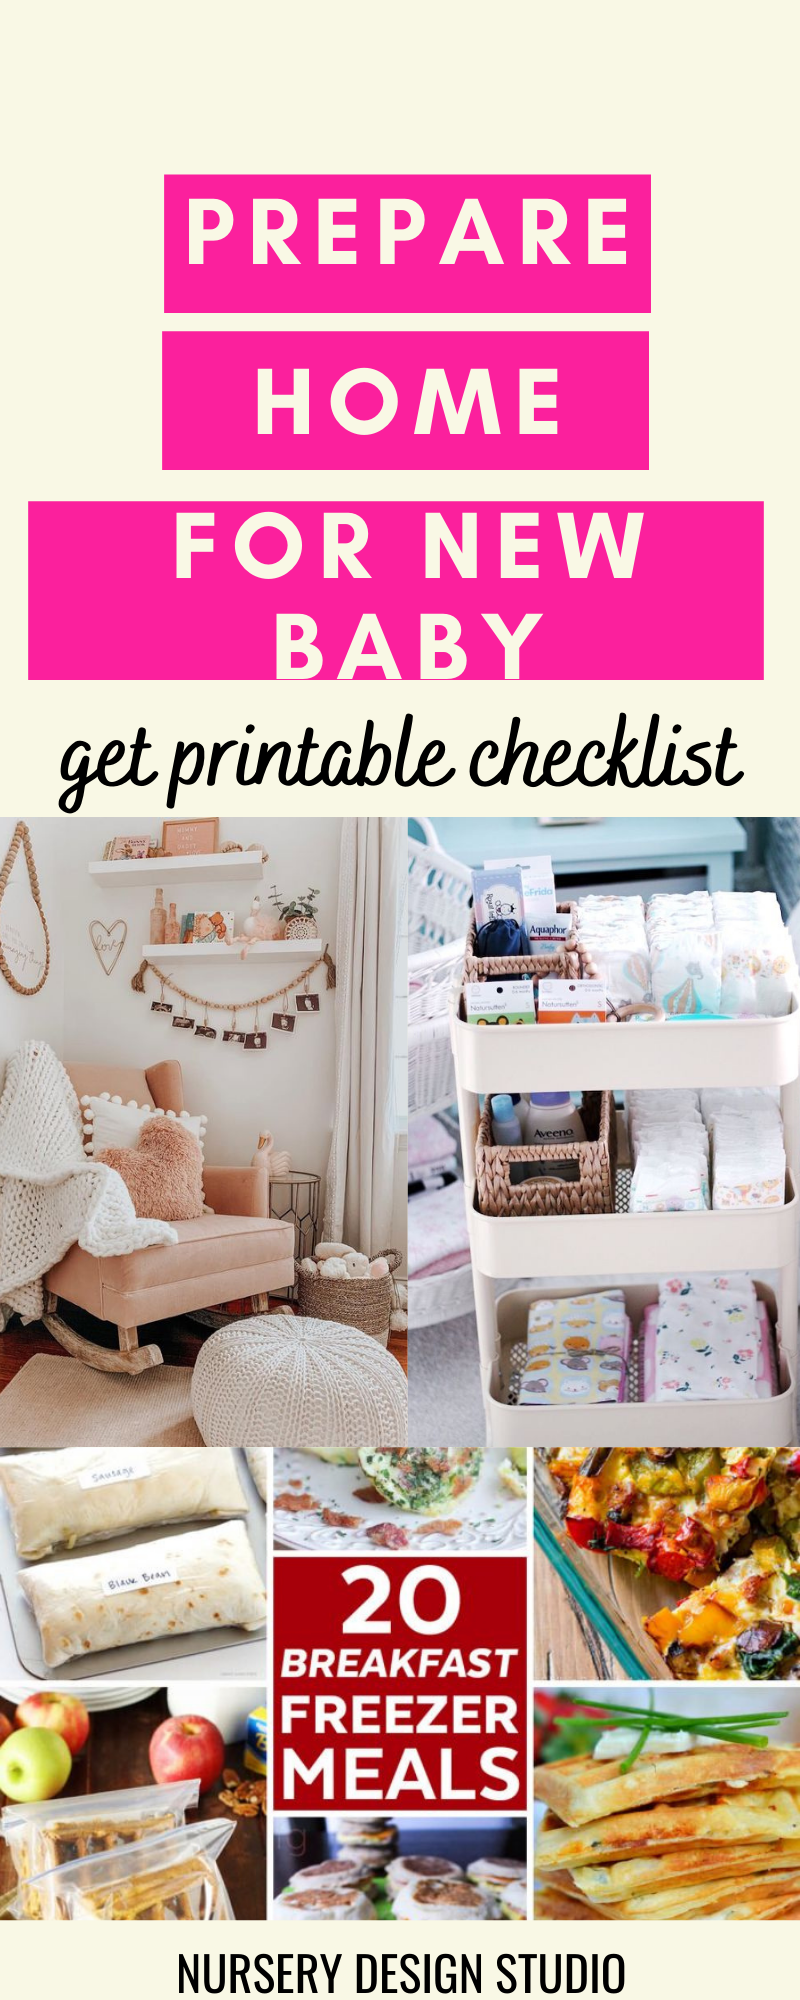 how to organize your home for new baby